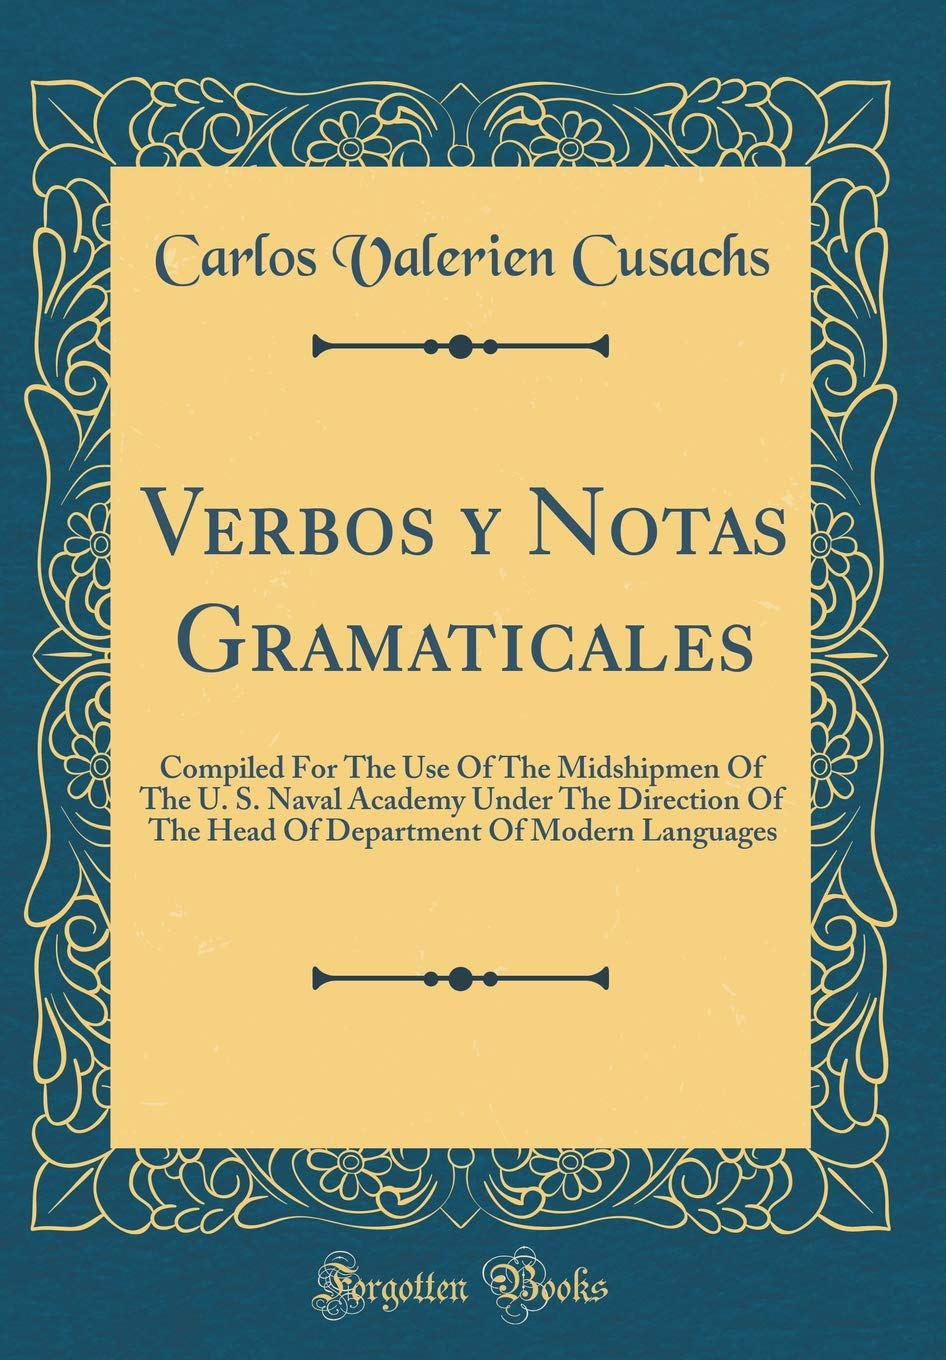 Verbos Y Notas Gramaticales Compiled For The Use Of The